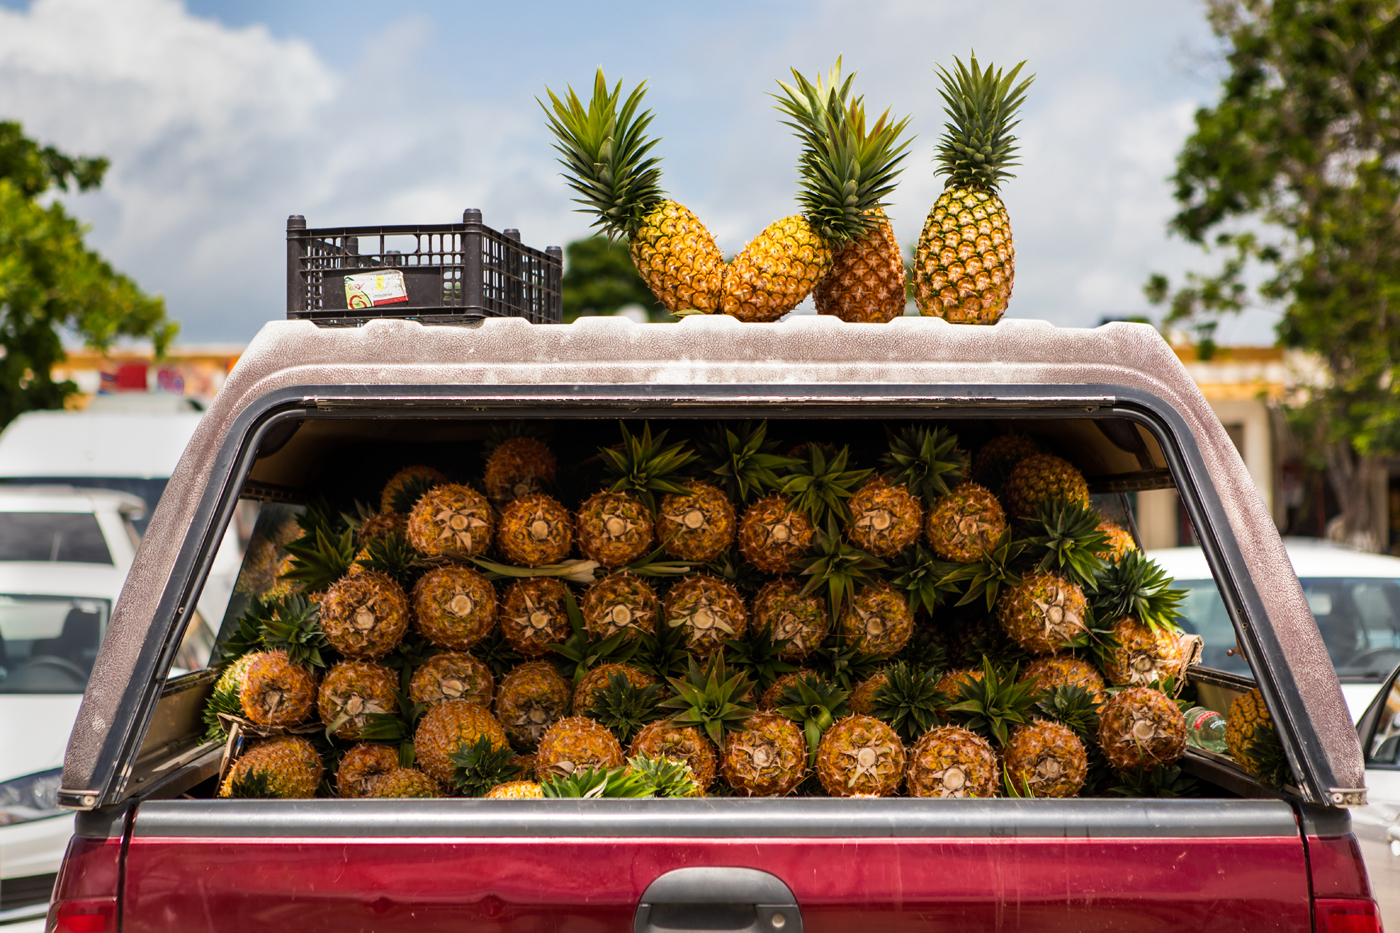 KeeneS-PineapplesforSale-CultureTravel